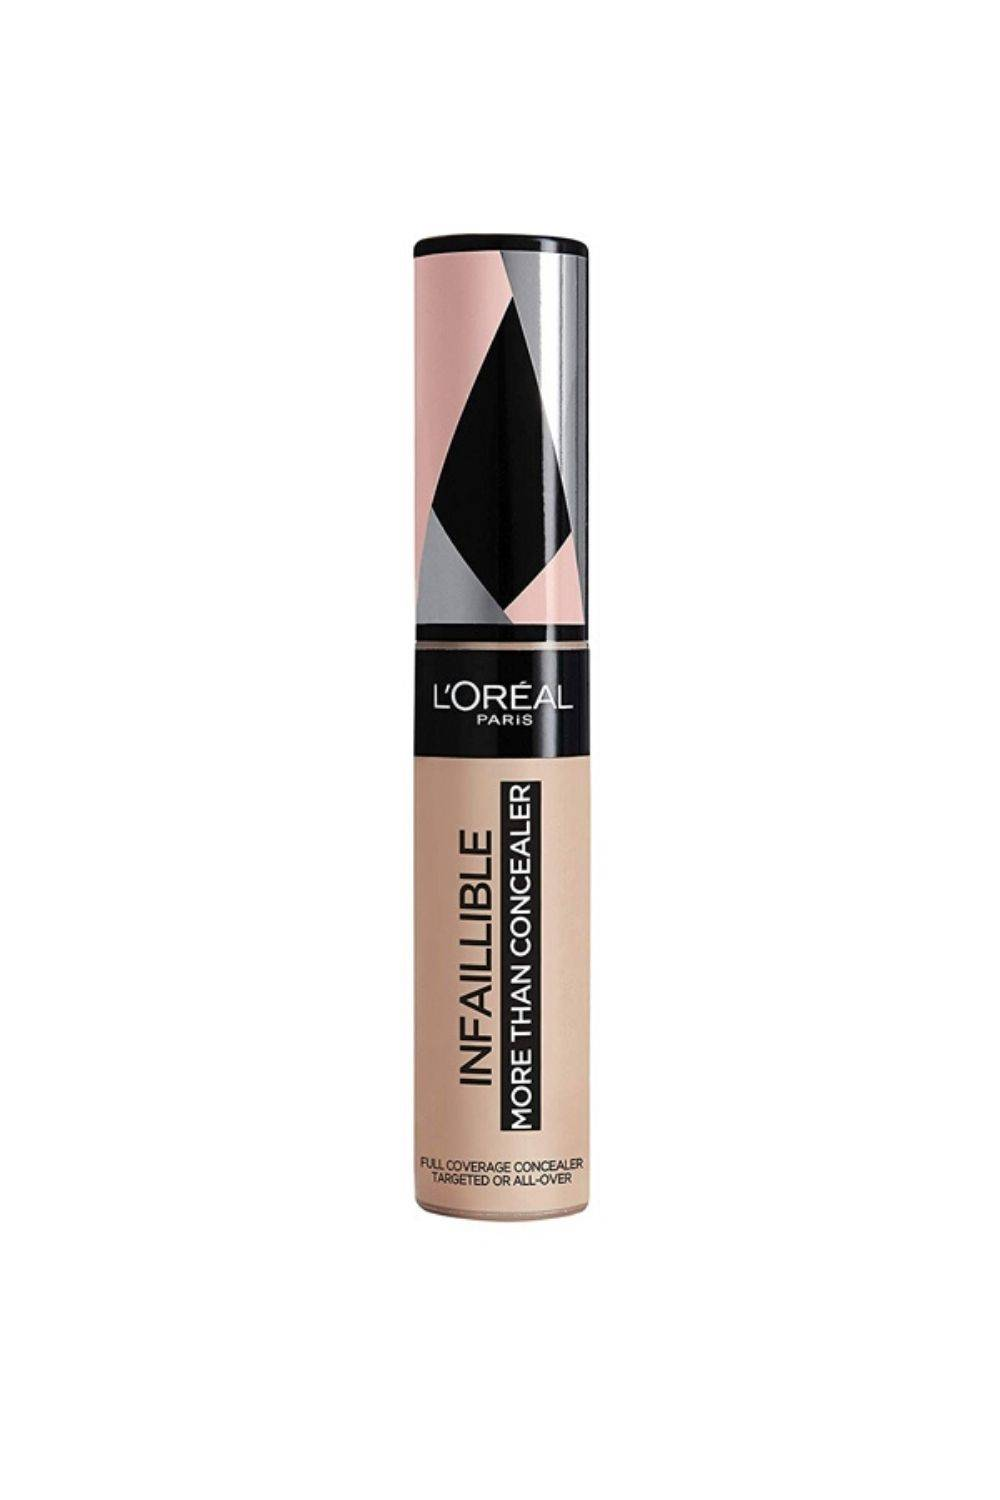 L'Oreal Paris Infalible More Than Concealer